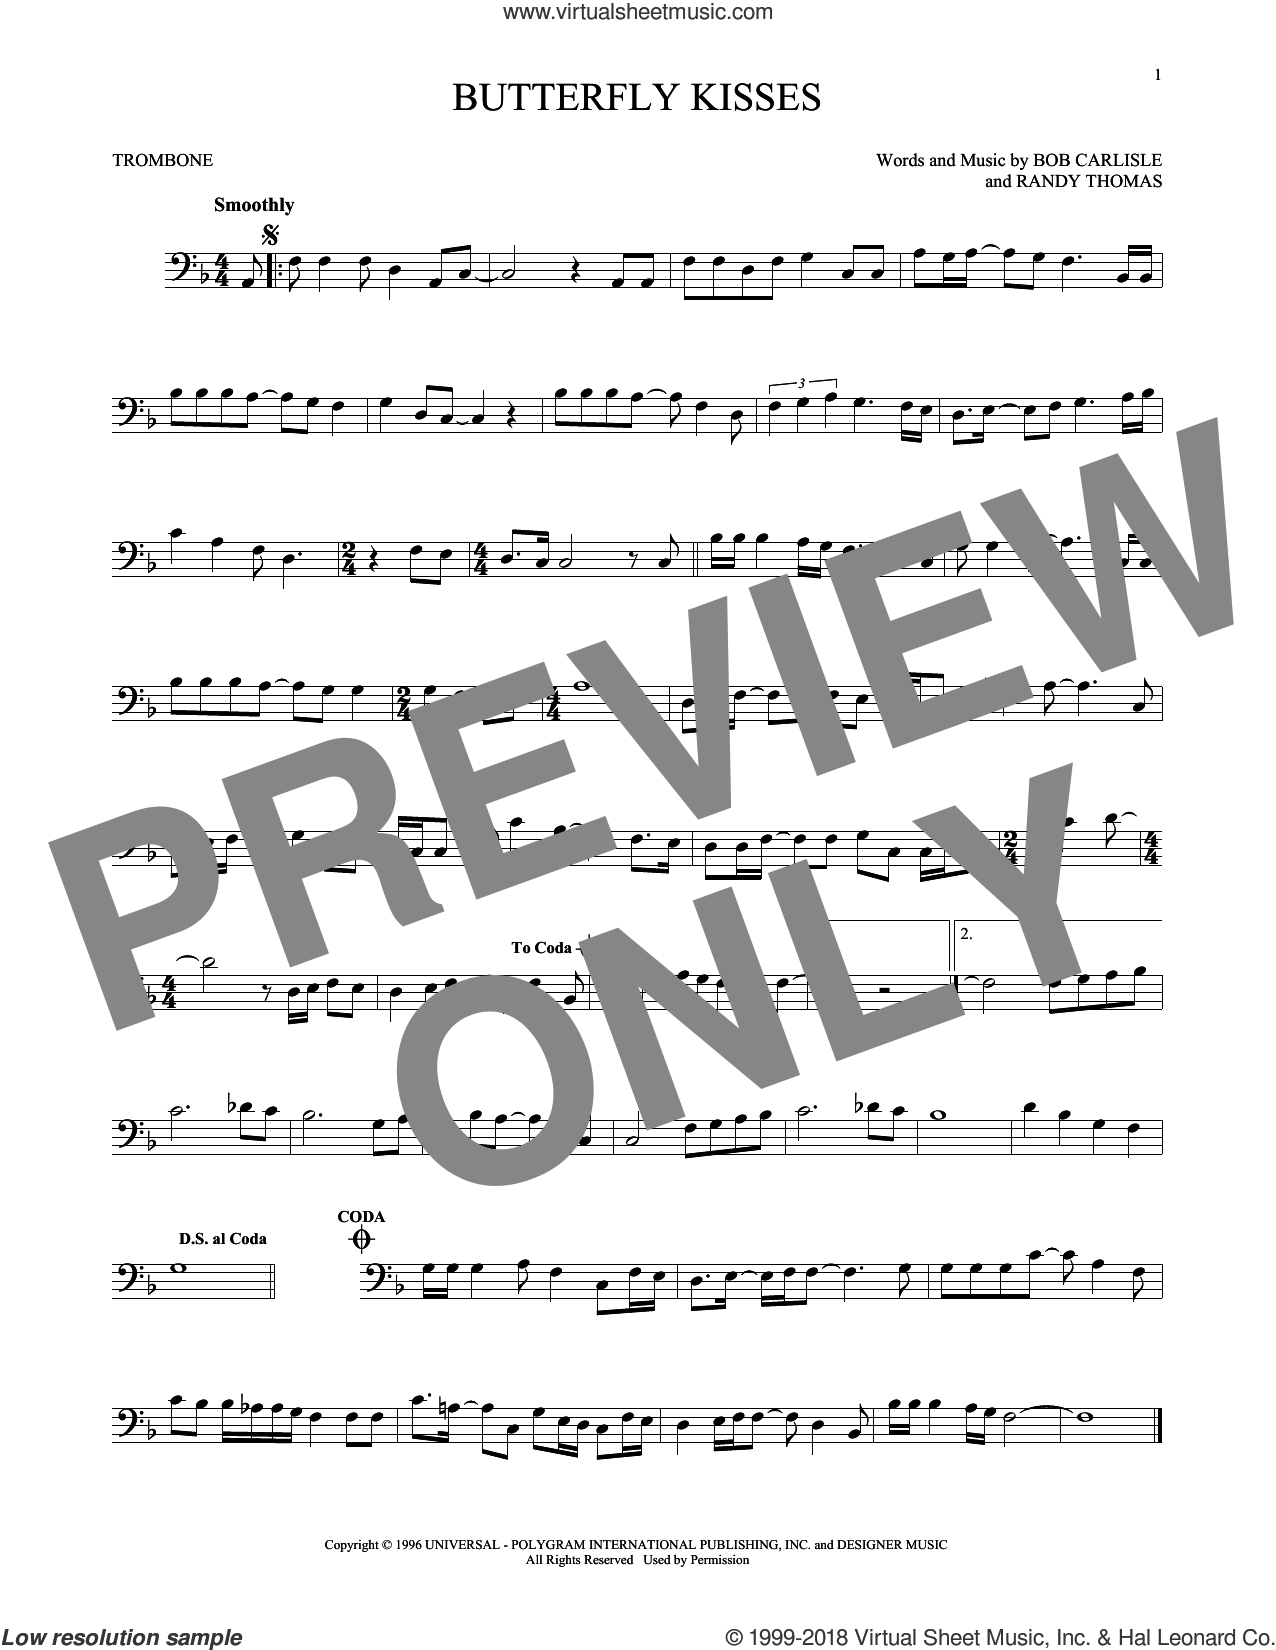 Butterfly Kisses sheet music for trombone solo by Randy Thomas